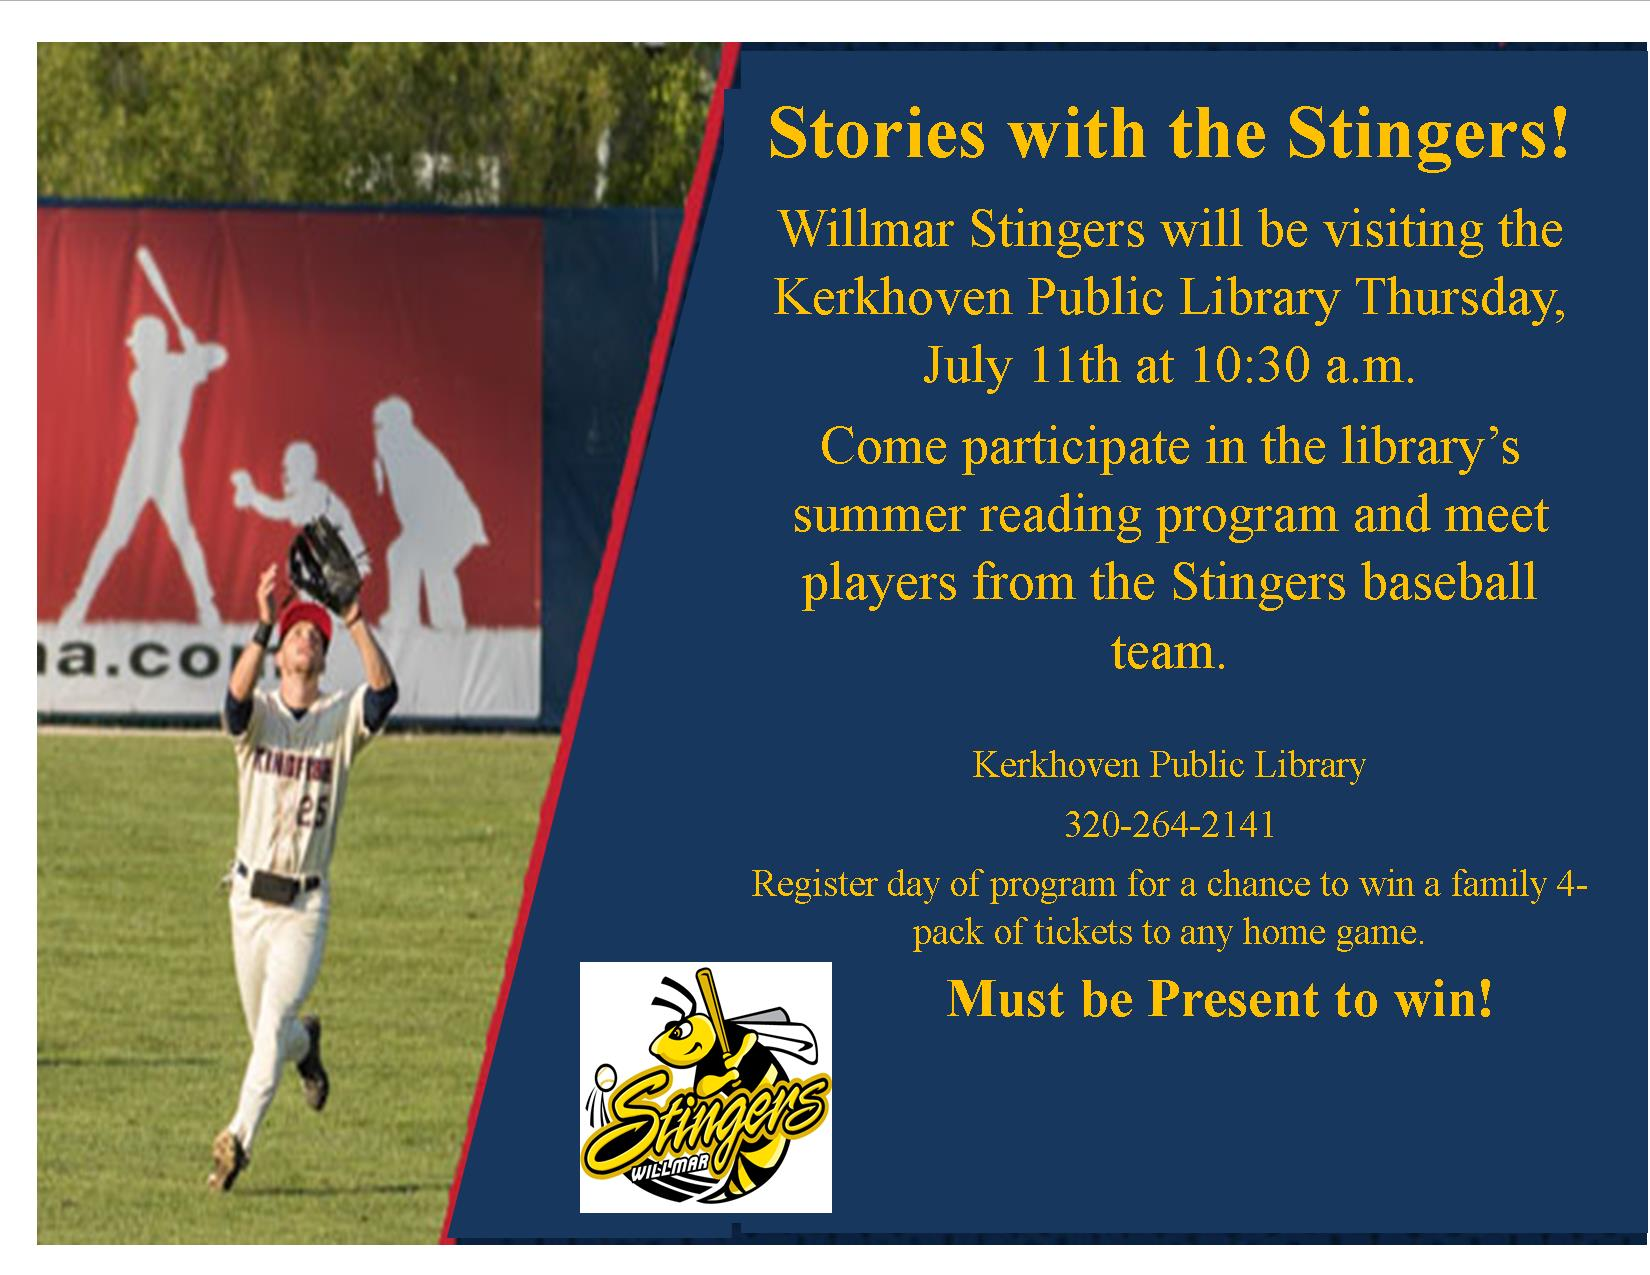 Stories with the Stingers Photo